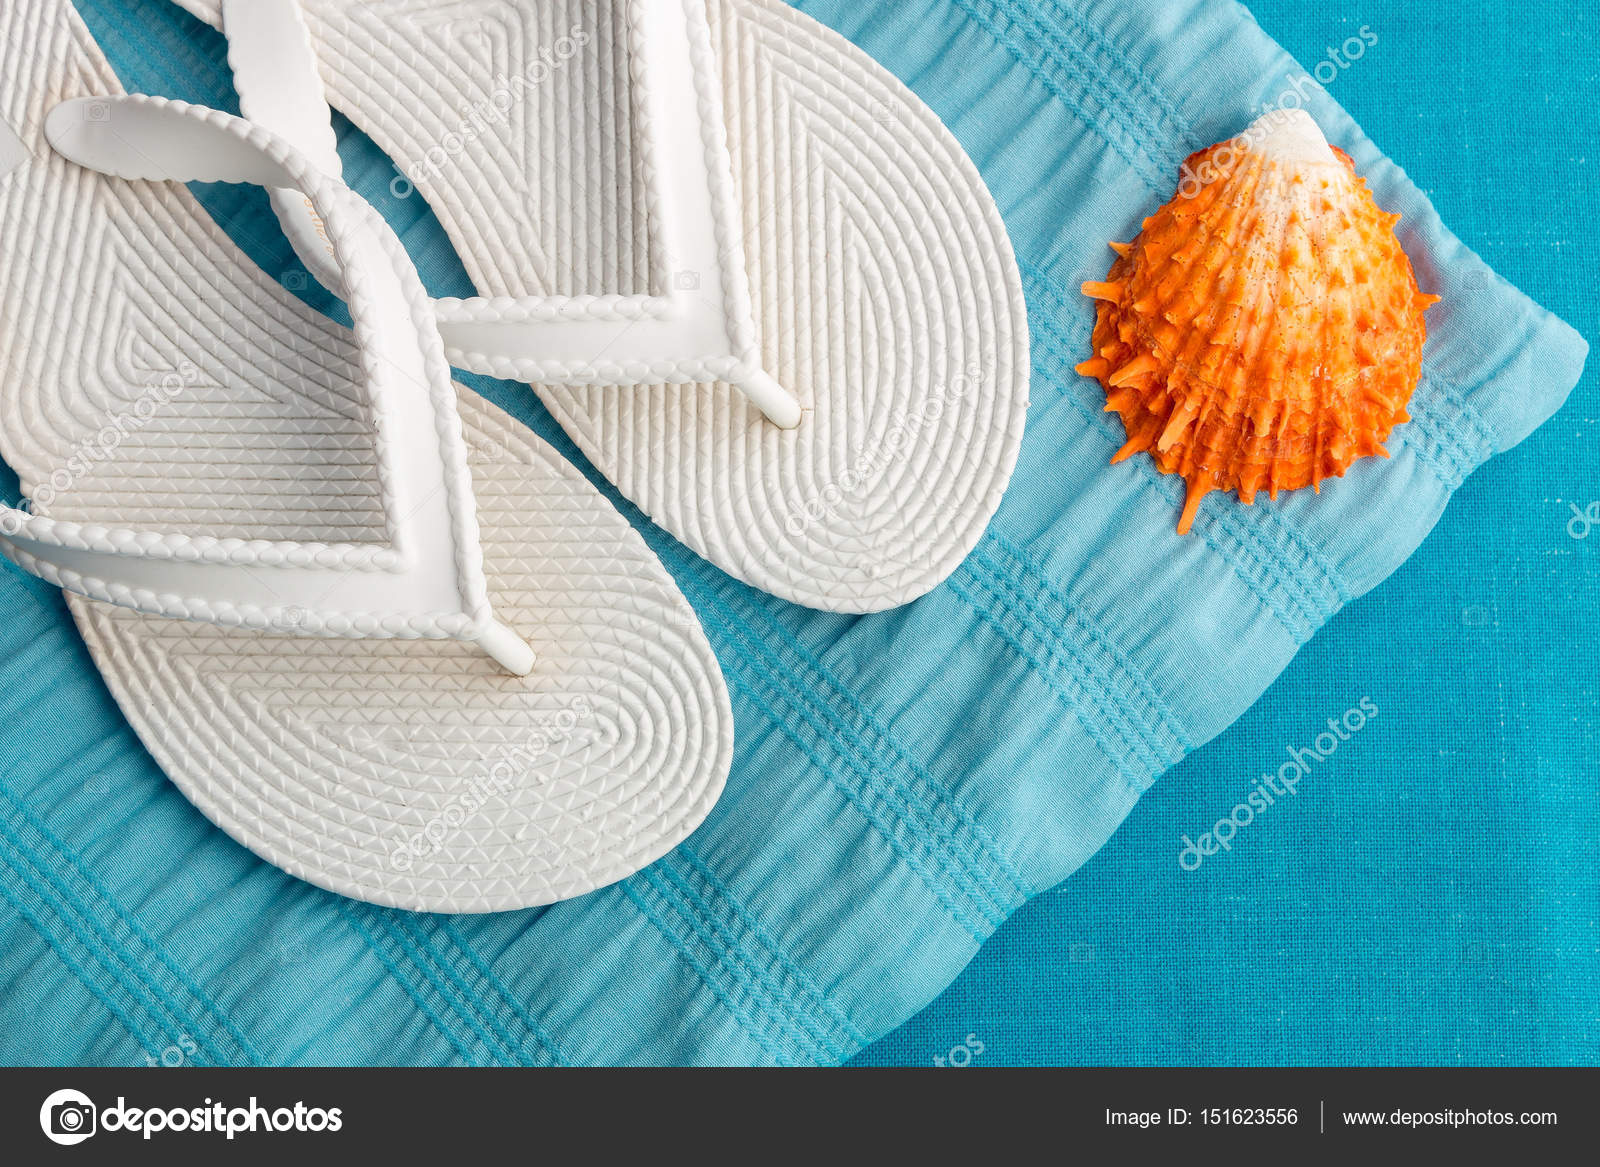 1c782d5cd White flip flop near seashell on blue background. Top view. — Stock Photo